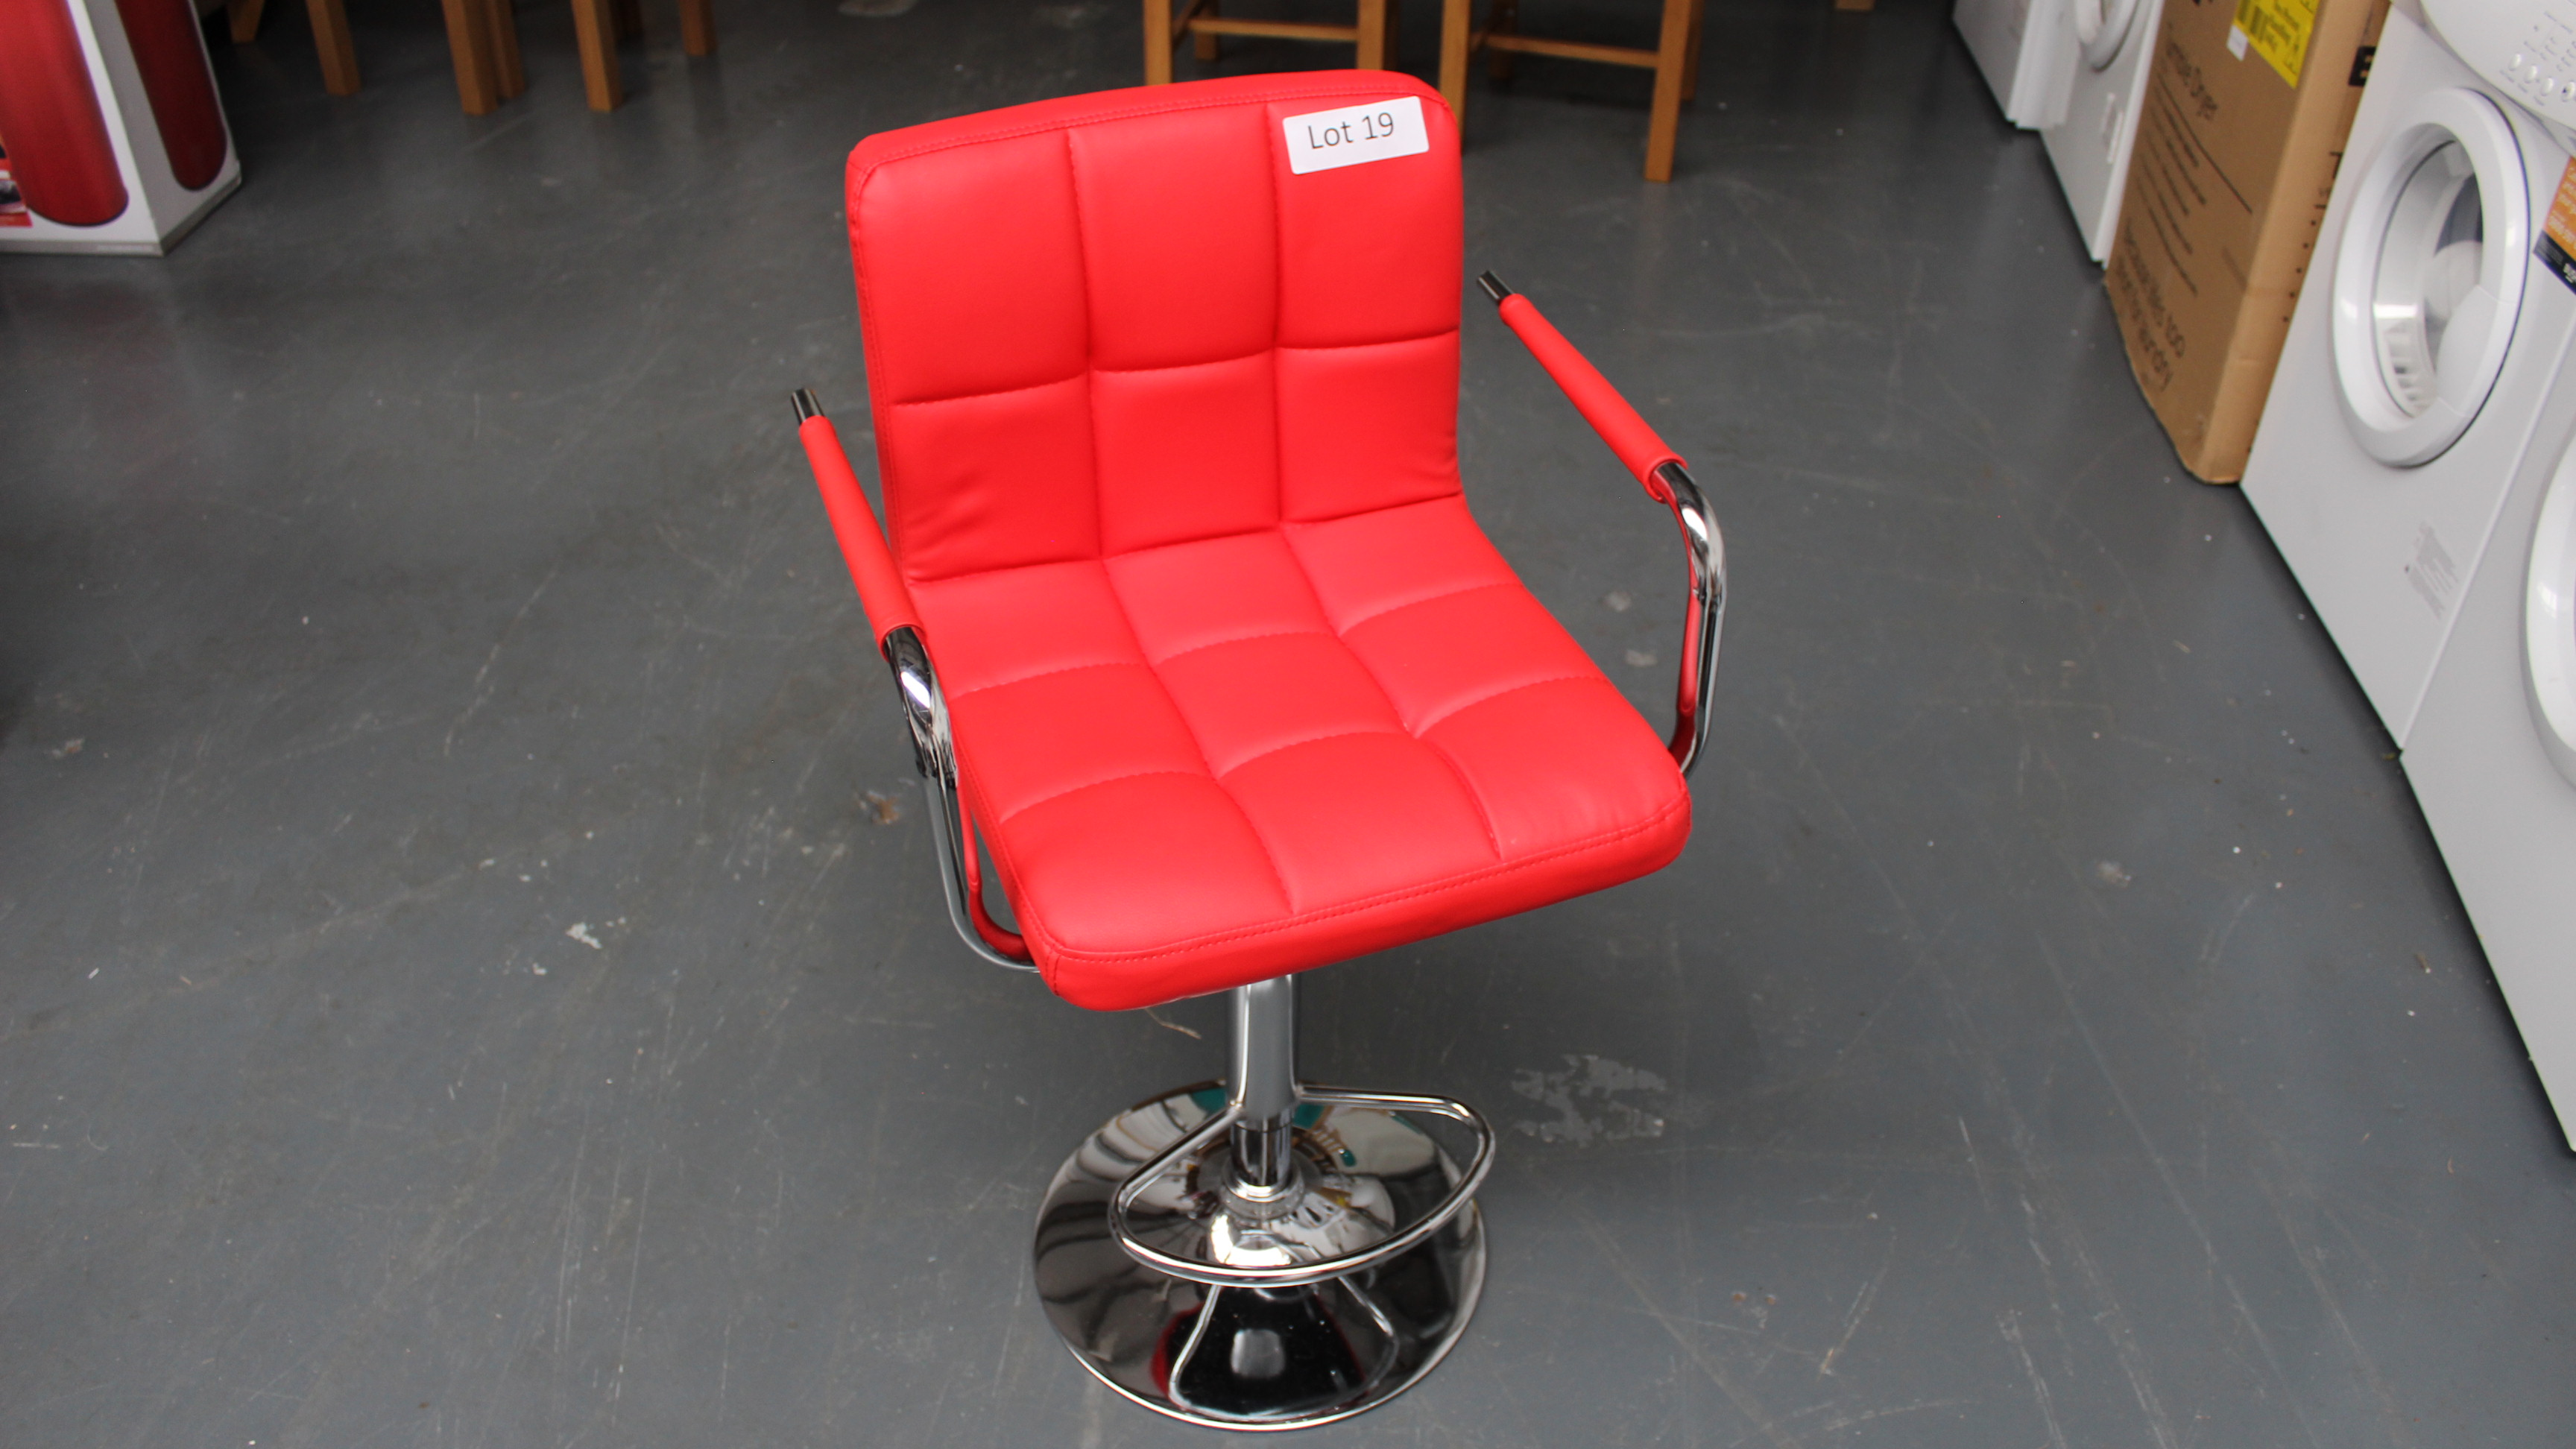 Lot 19 - Red Bar Stool. New